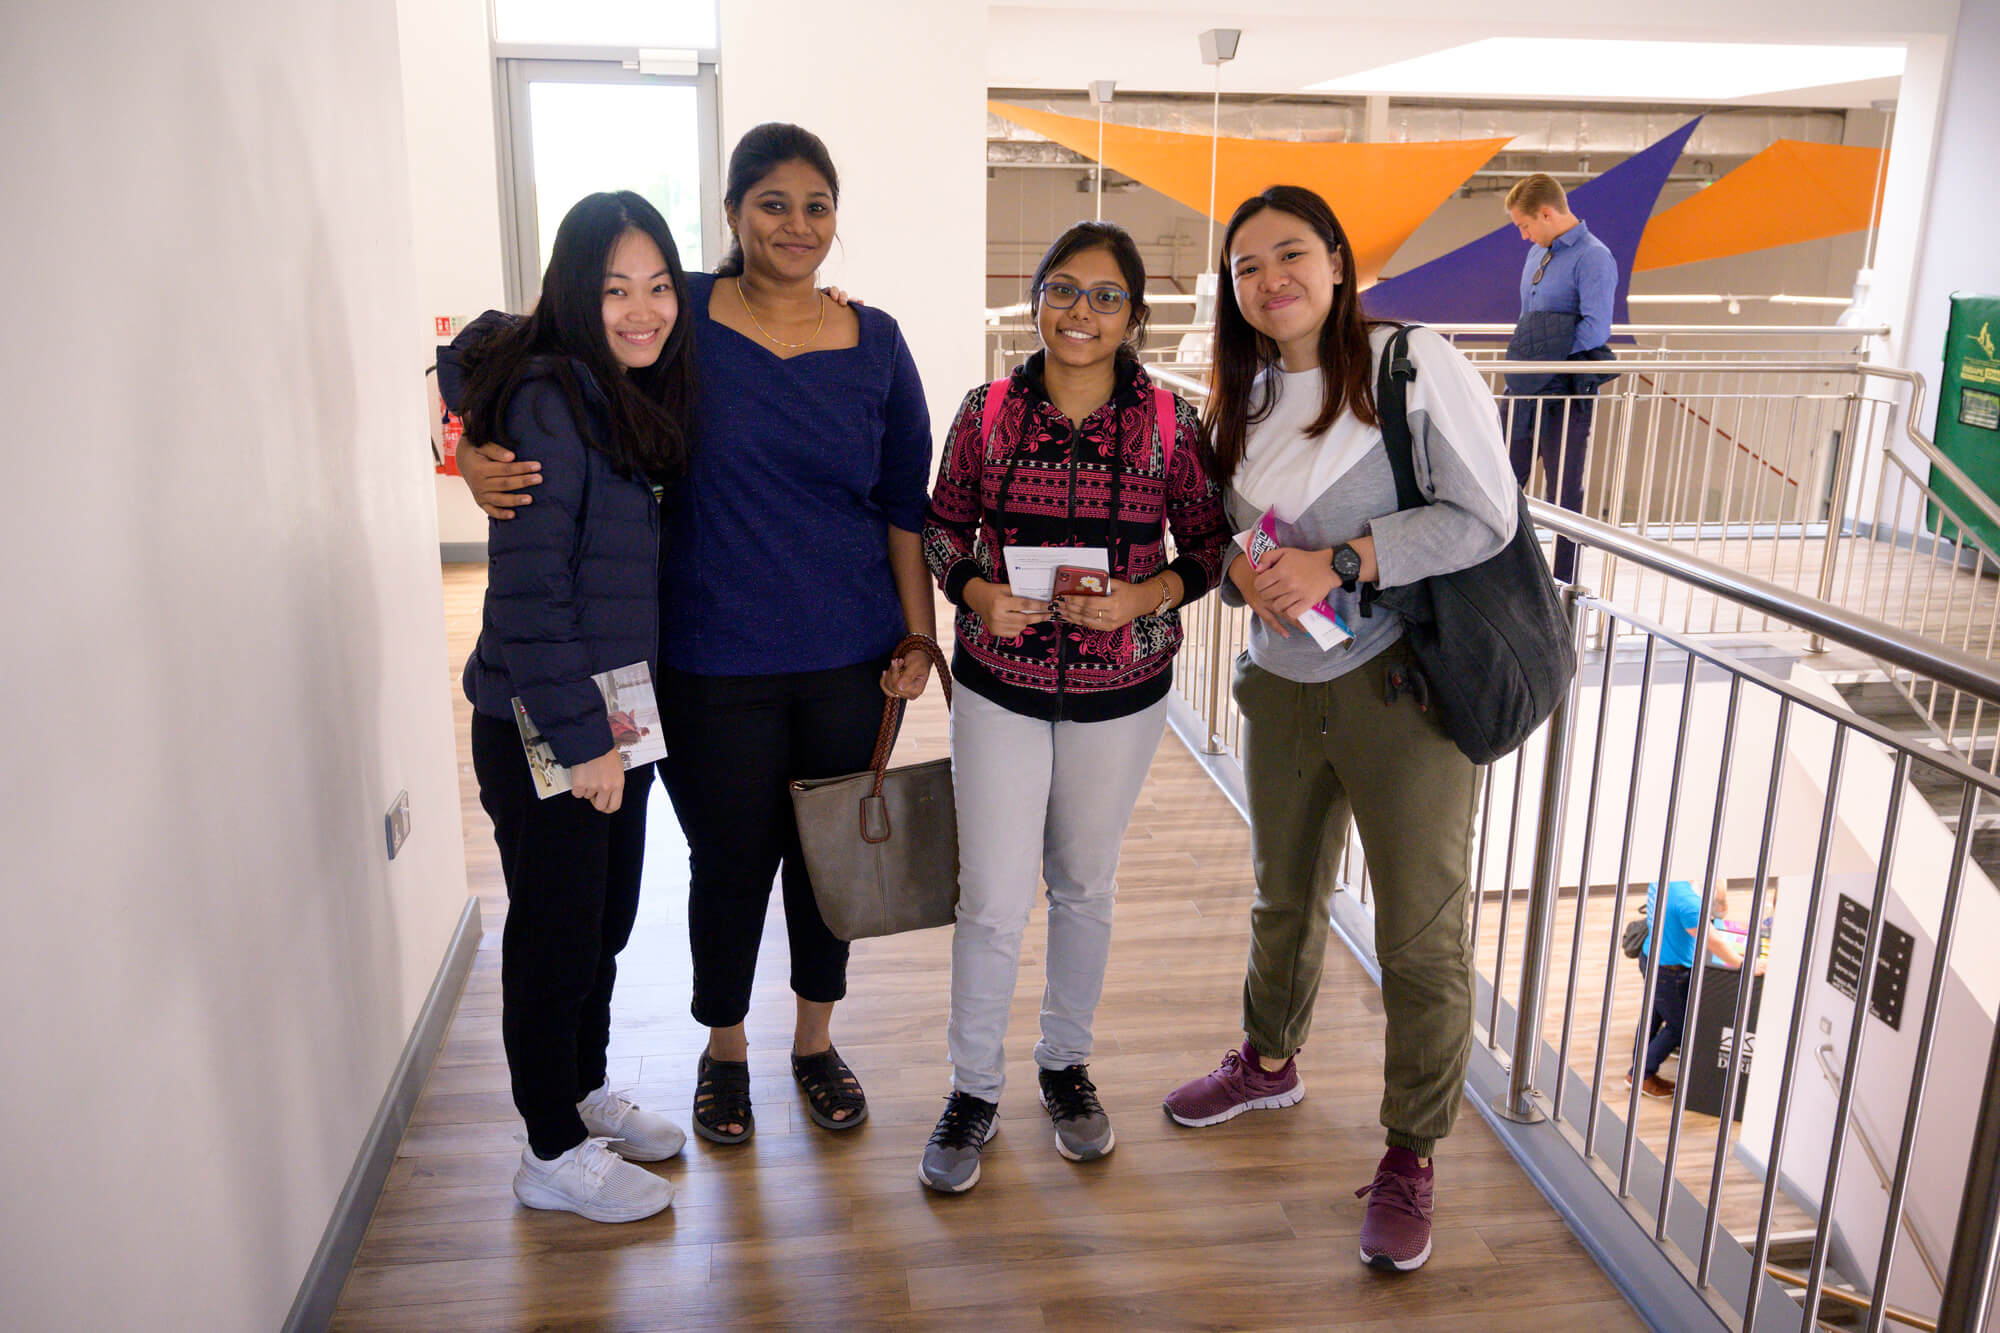 Group of international students attending the welcome event held at the Sport Centre, Kedleston Road.